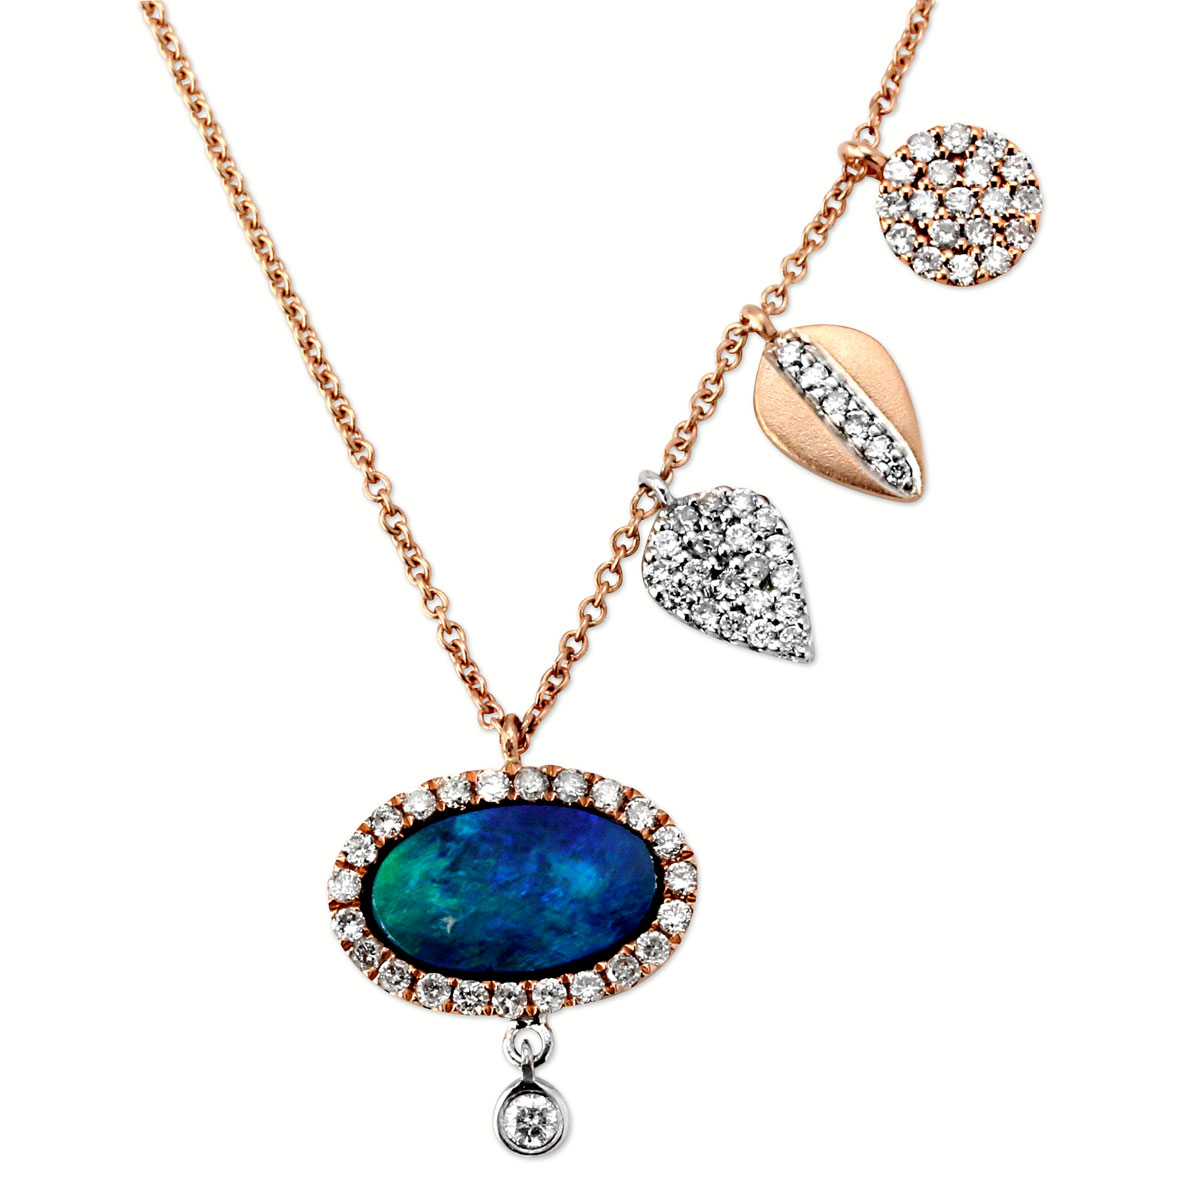 344782-Diamond and Opal Necklace